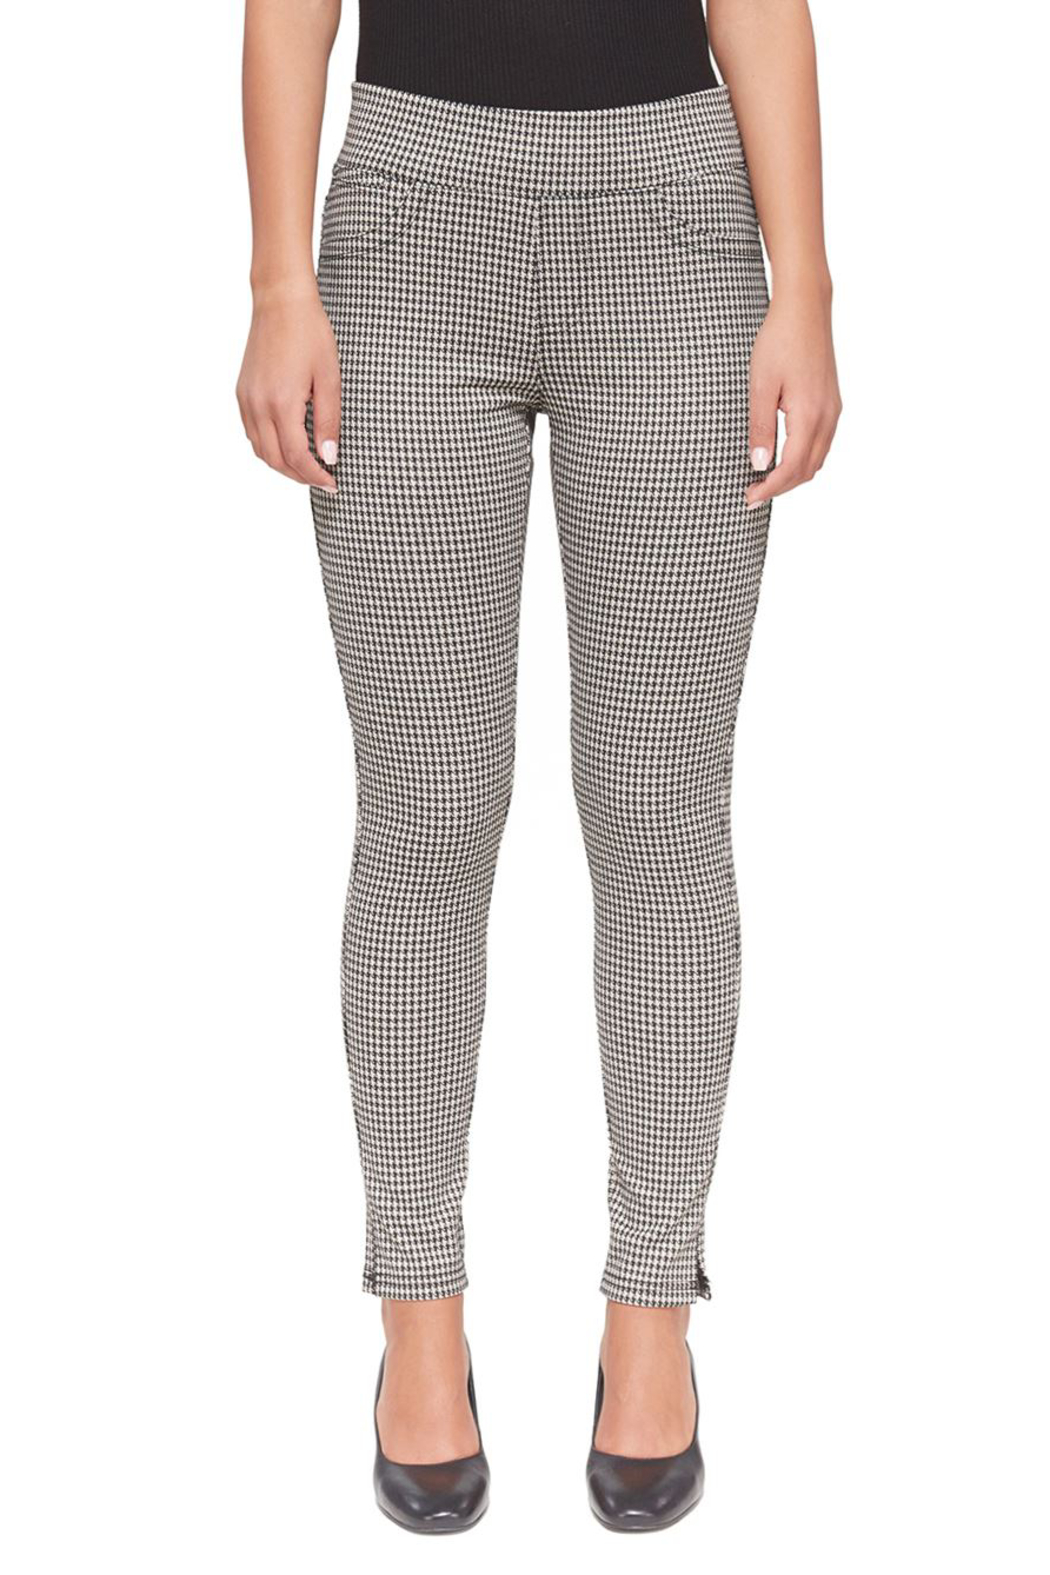 Lola Jeans Anna Houndstooth Jacquard Mid Rise Pant - Main Image